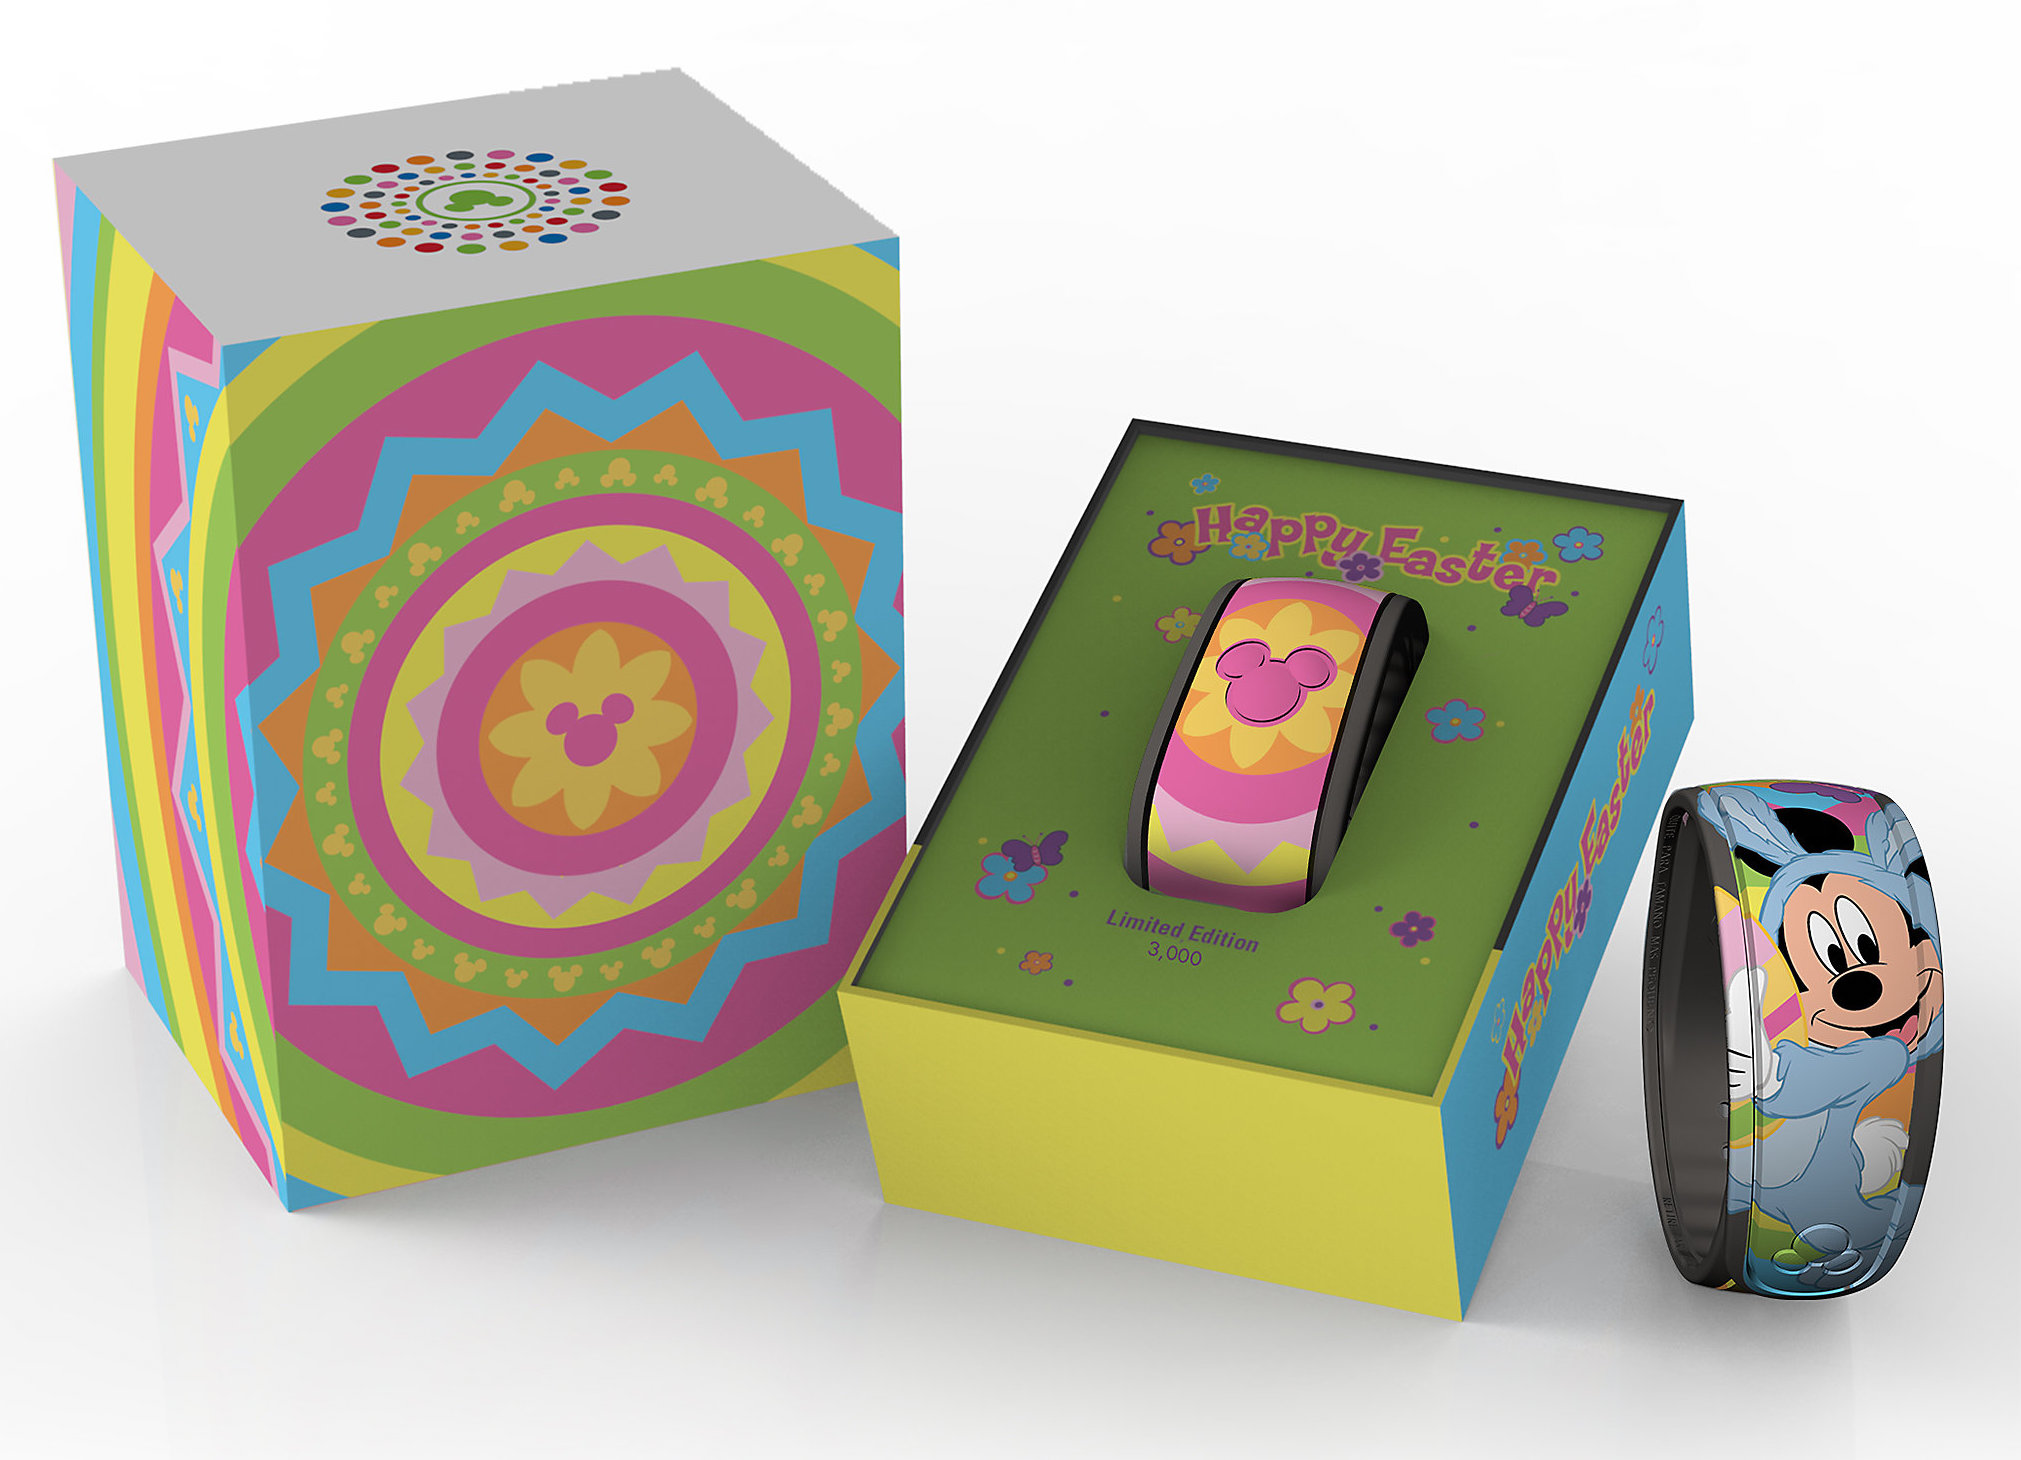 Limited Edition 3000 Easter MagicBand for sale February 23rd ...